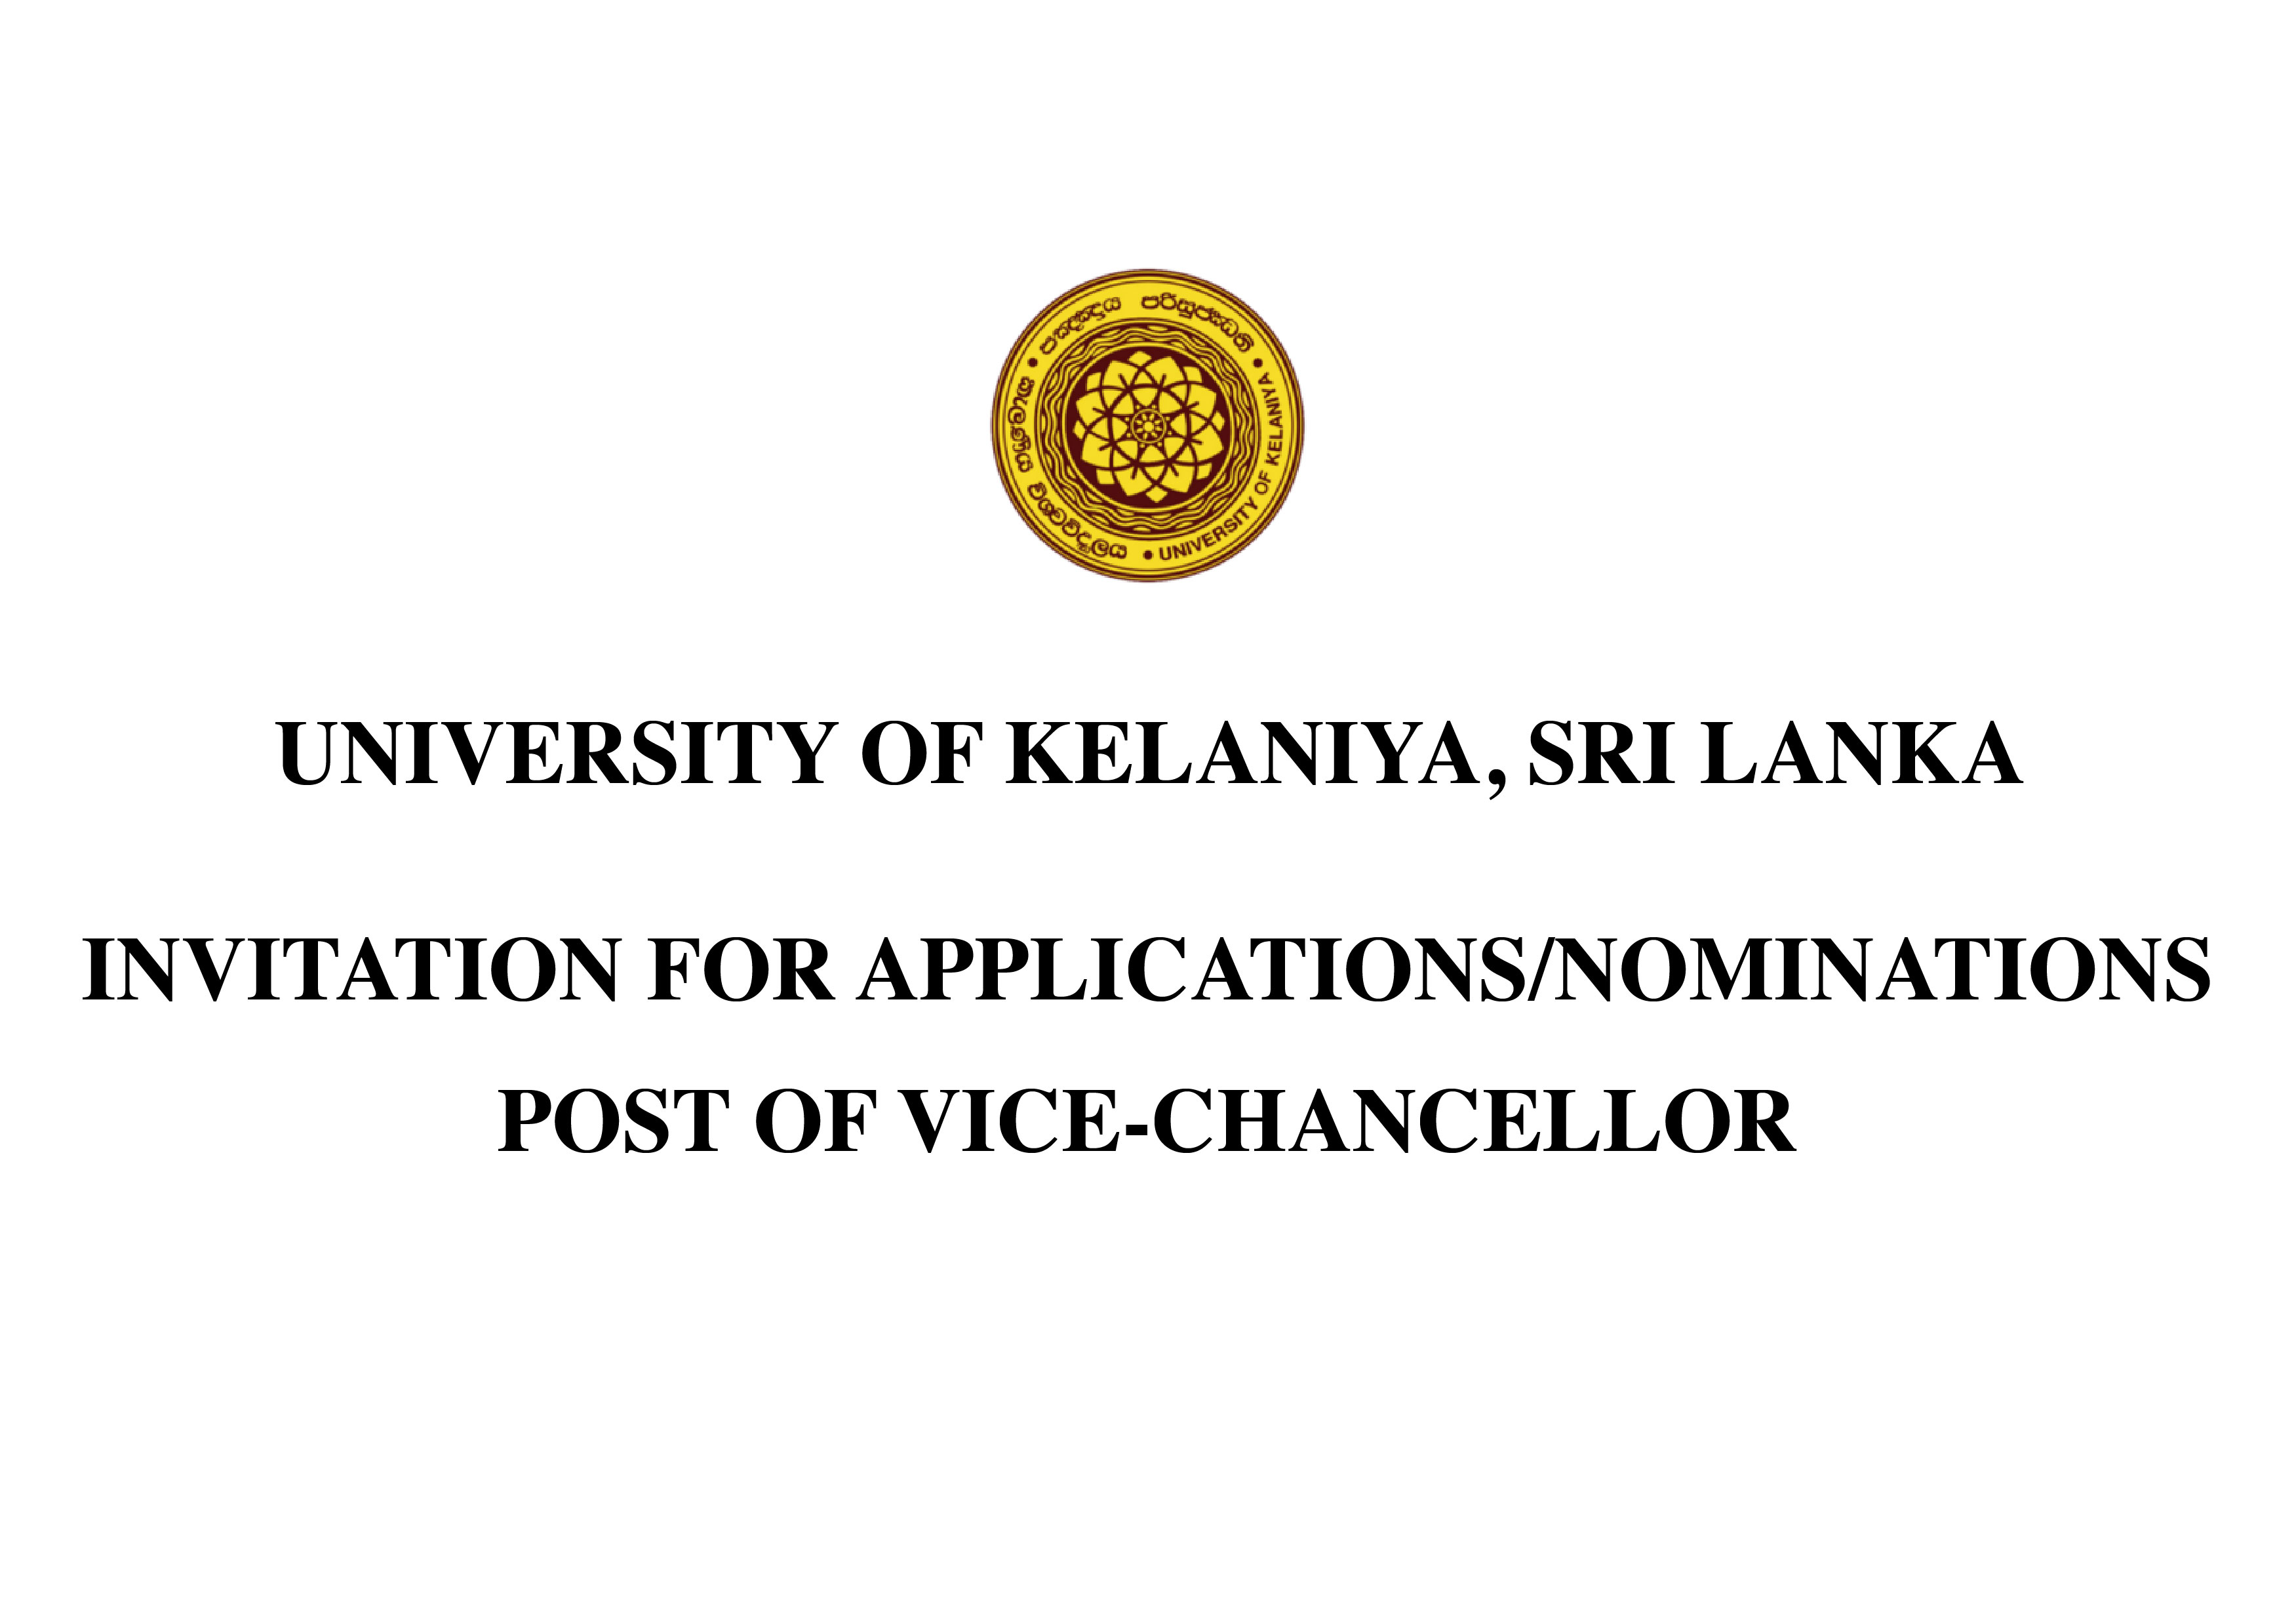 Invitation for applications / nominations - post of vice-chancellor